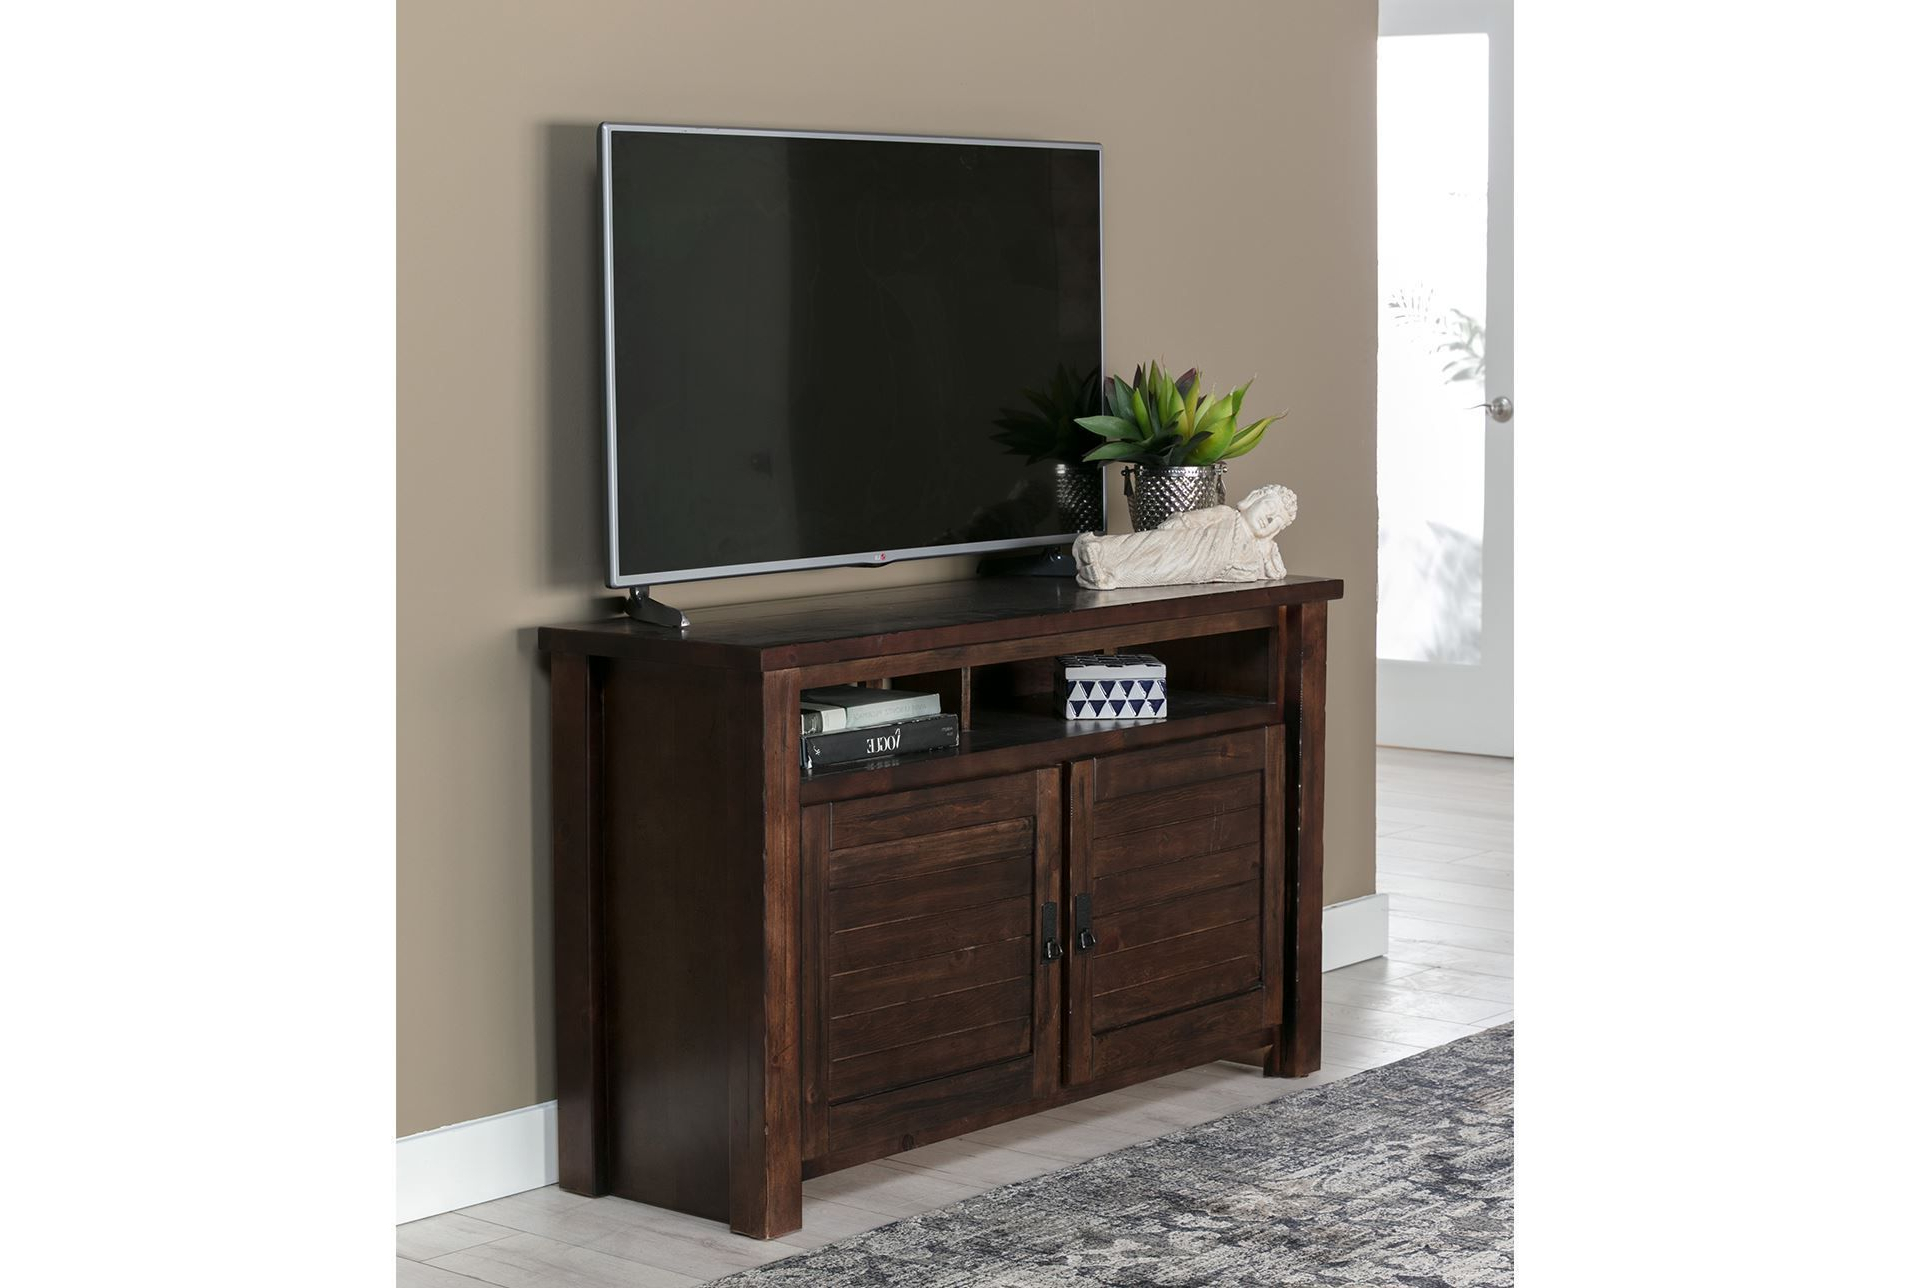 Canyon 54 Inch Tv Stand | Home Decor | Home Living Room, Tv Stand Inside Canyon 54 Inch Tv Stands (Gallery 3 of 20)